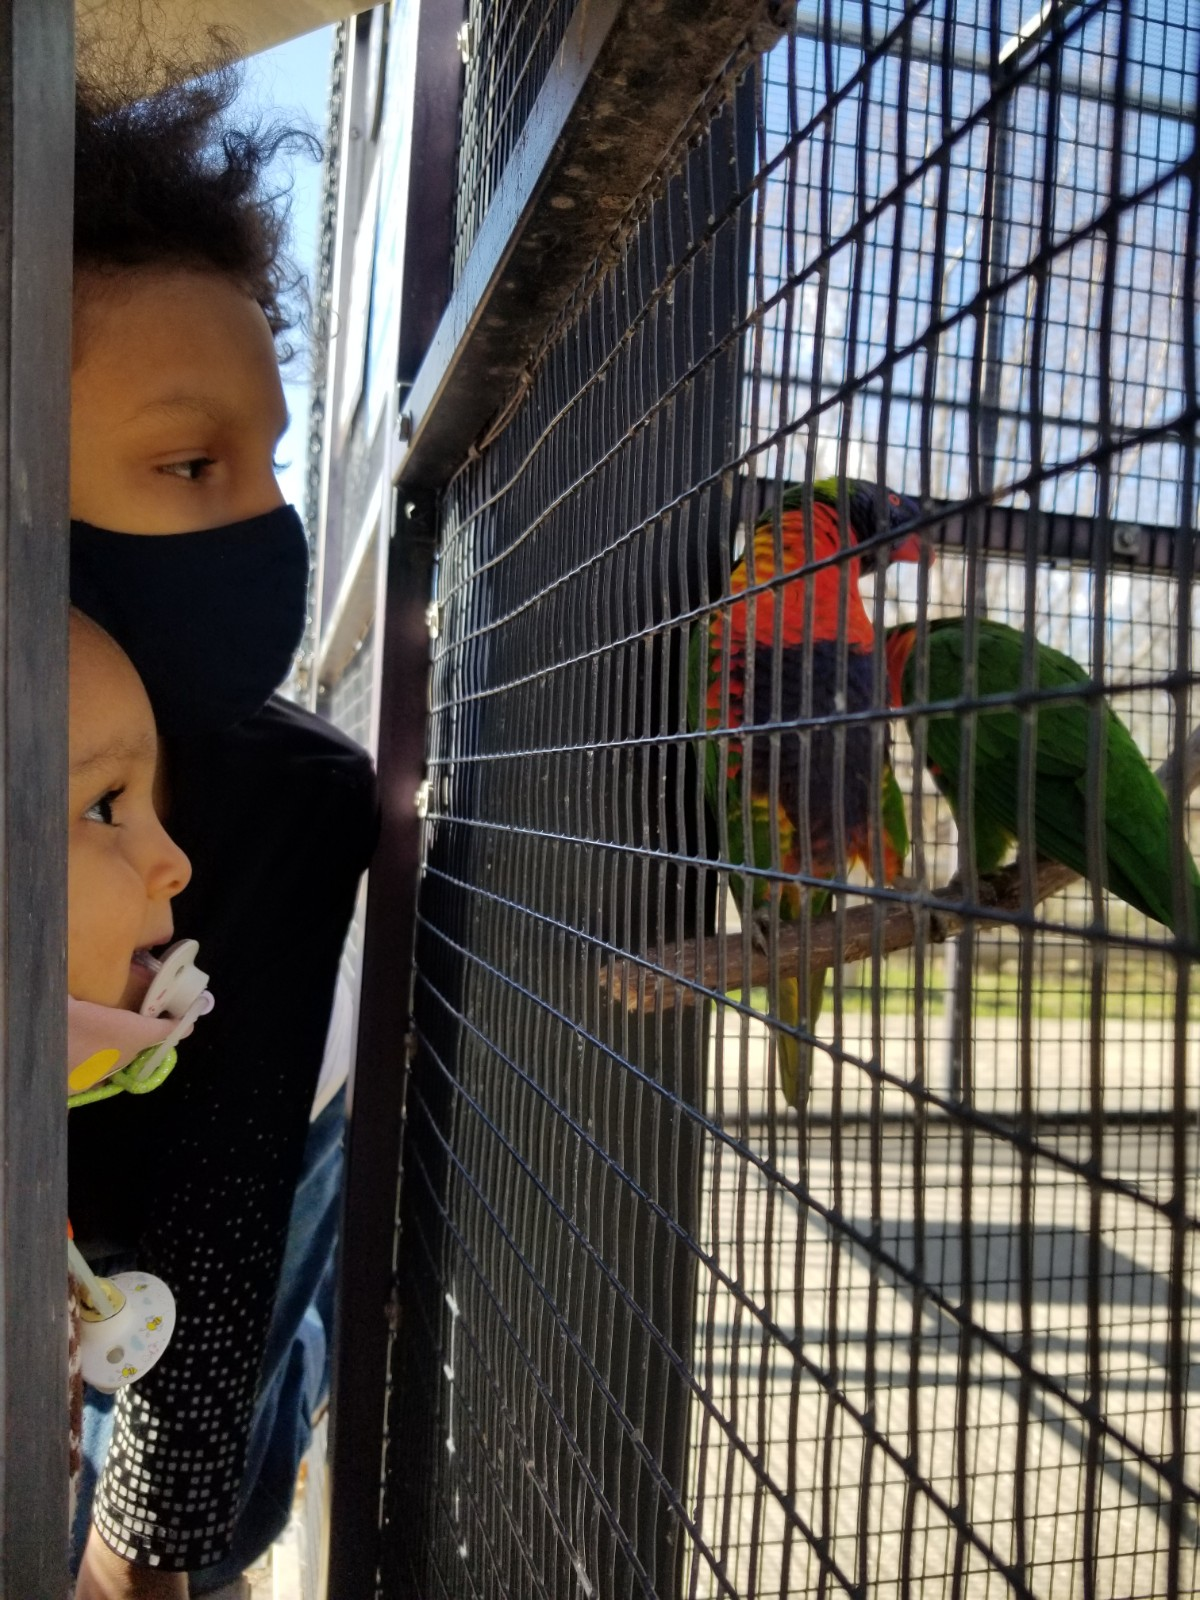 Kansas City Zoo March 2020